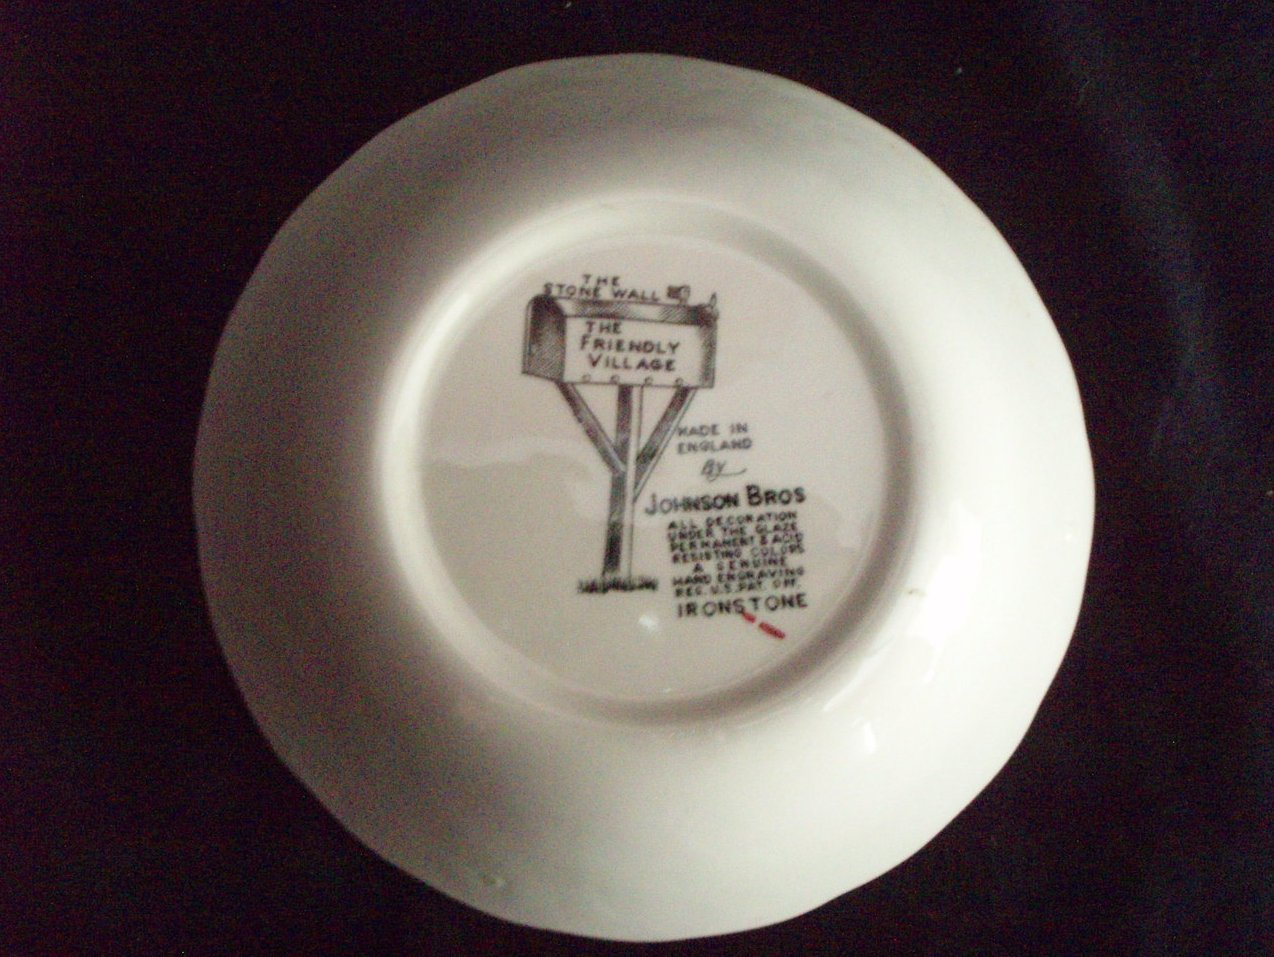 Image 4 of Johnson Bros Friendly Village dessert berry bowl Stone Wall